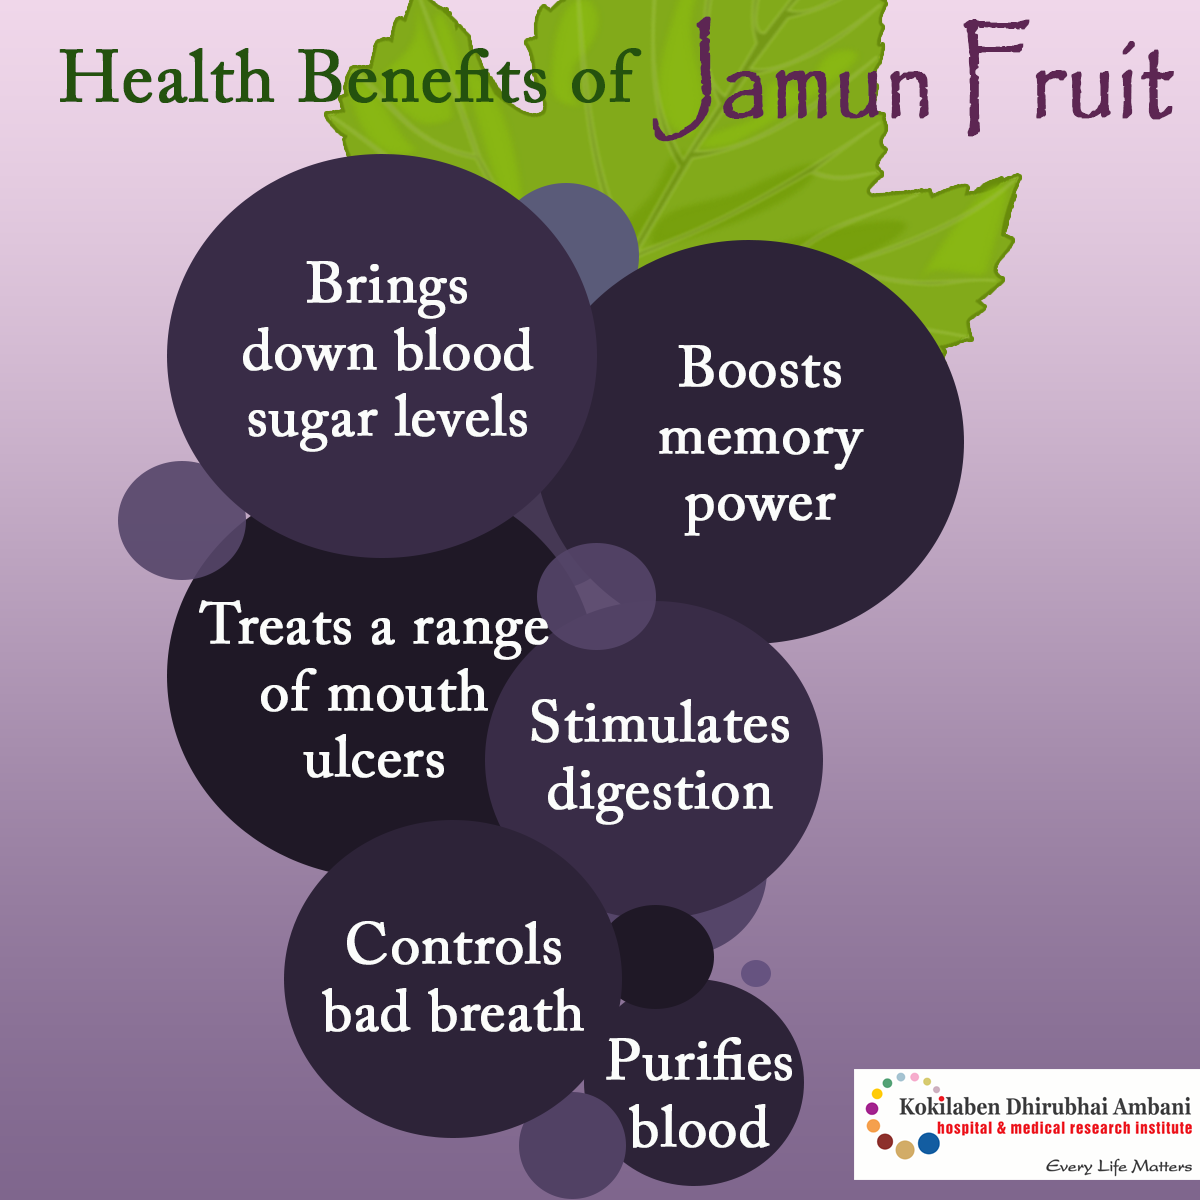 Health benefits of Jamun fruit